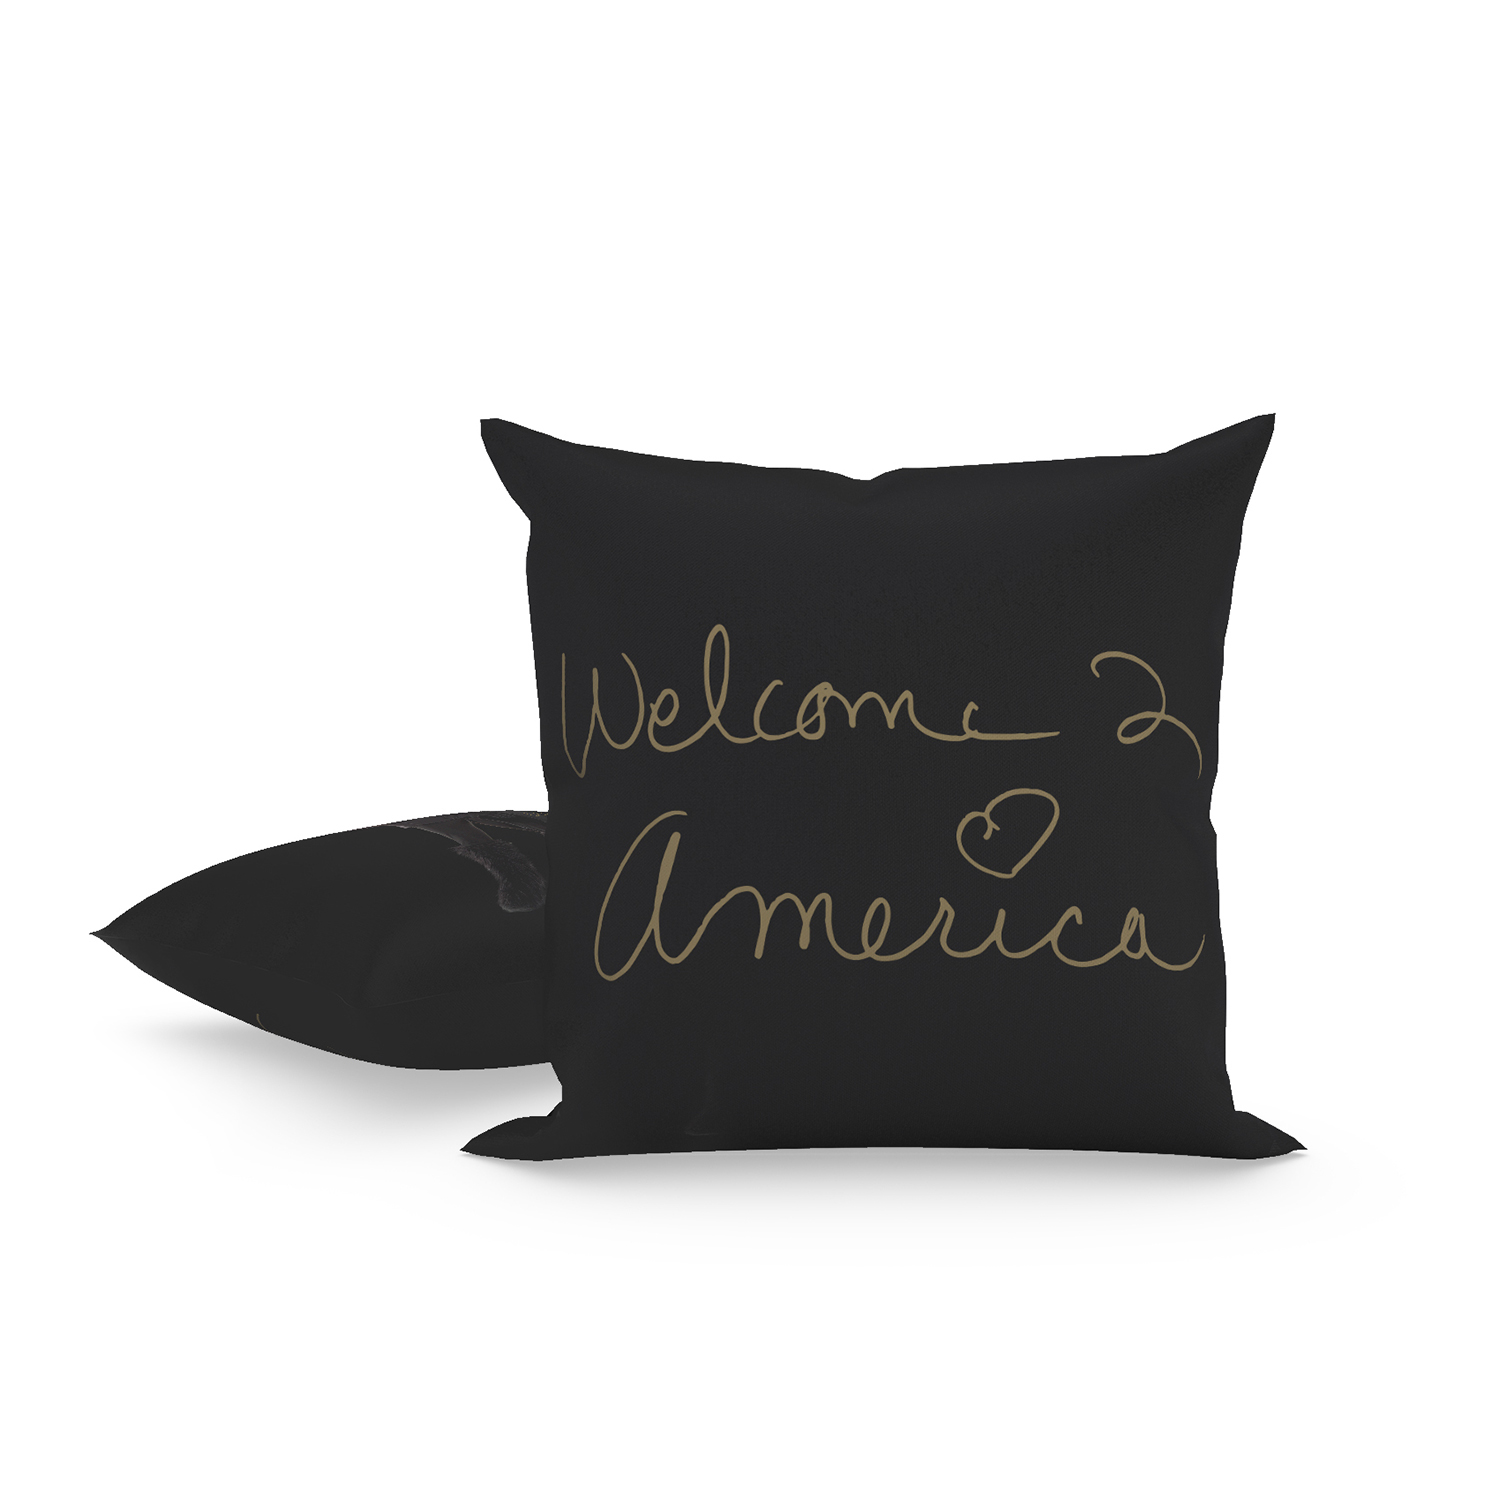 Welcome 2 America Heart Pillow